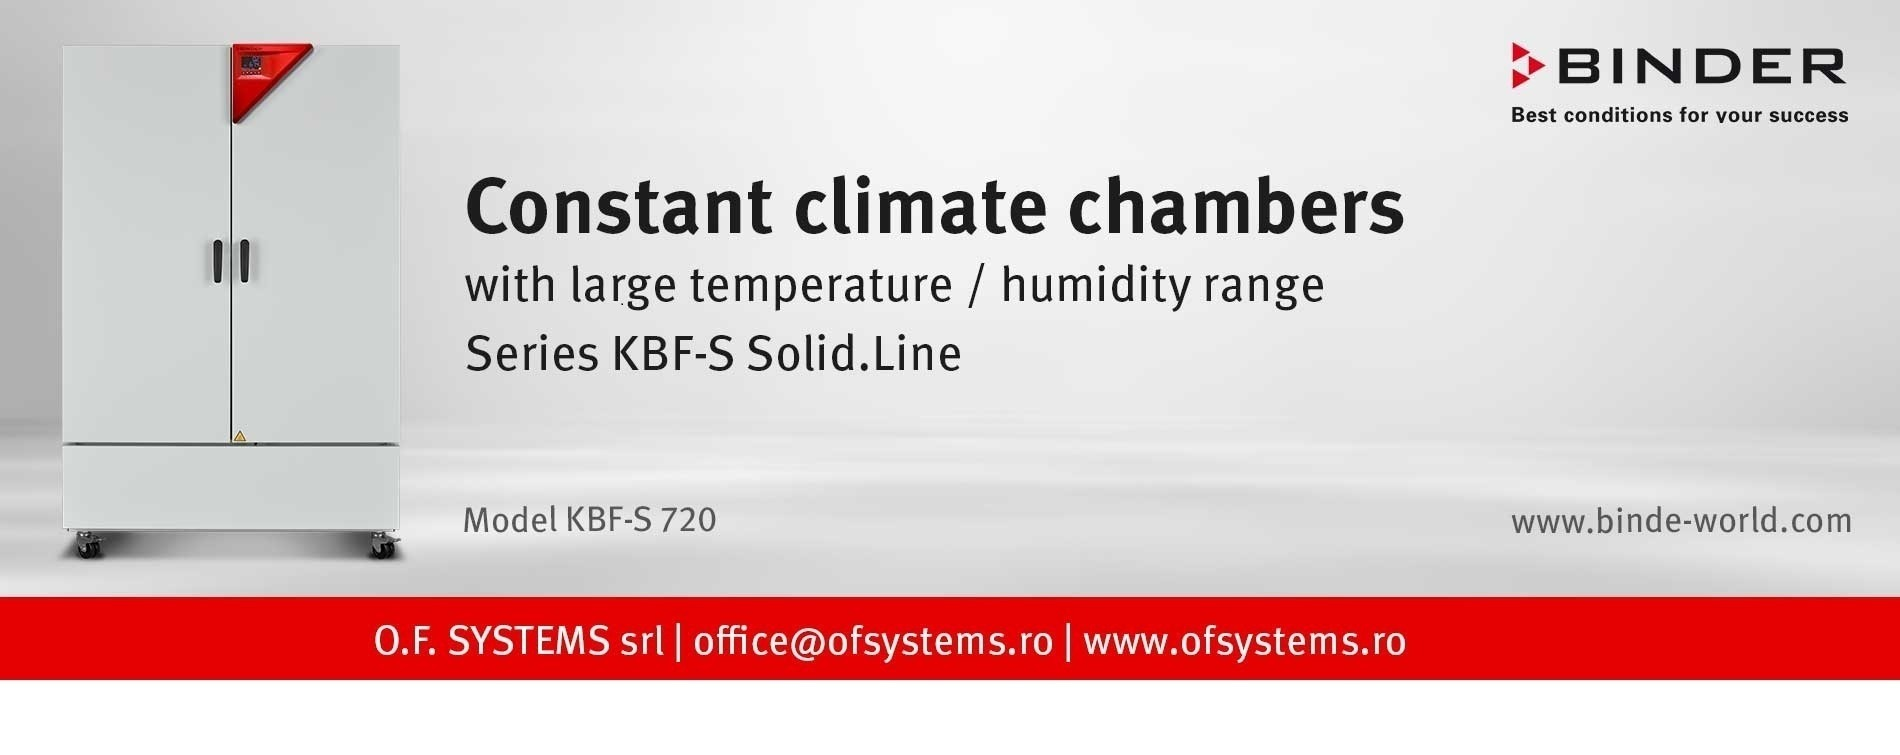 camere climatice kbf-s